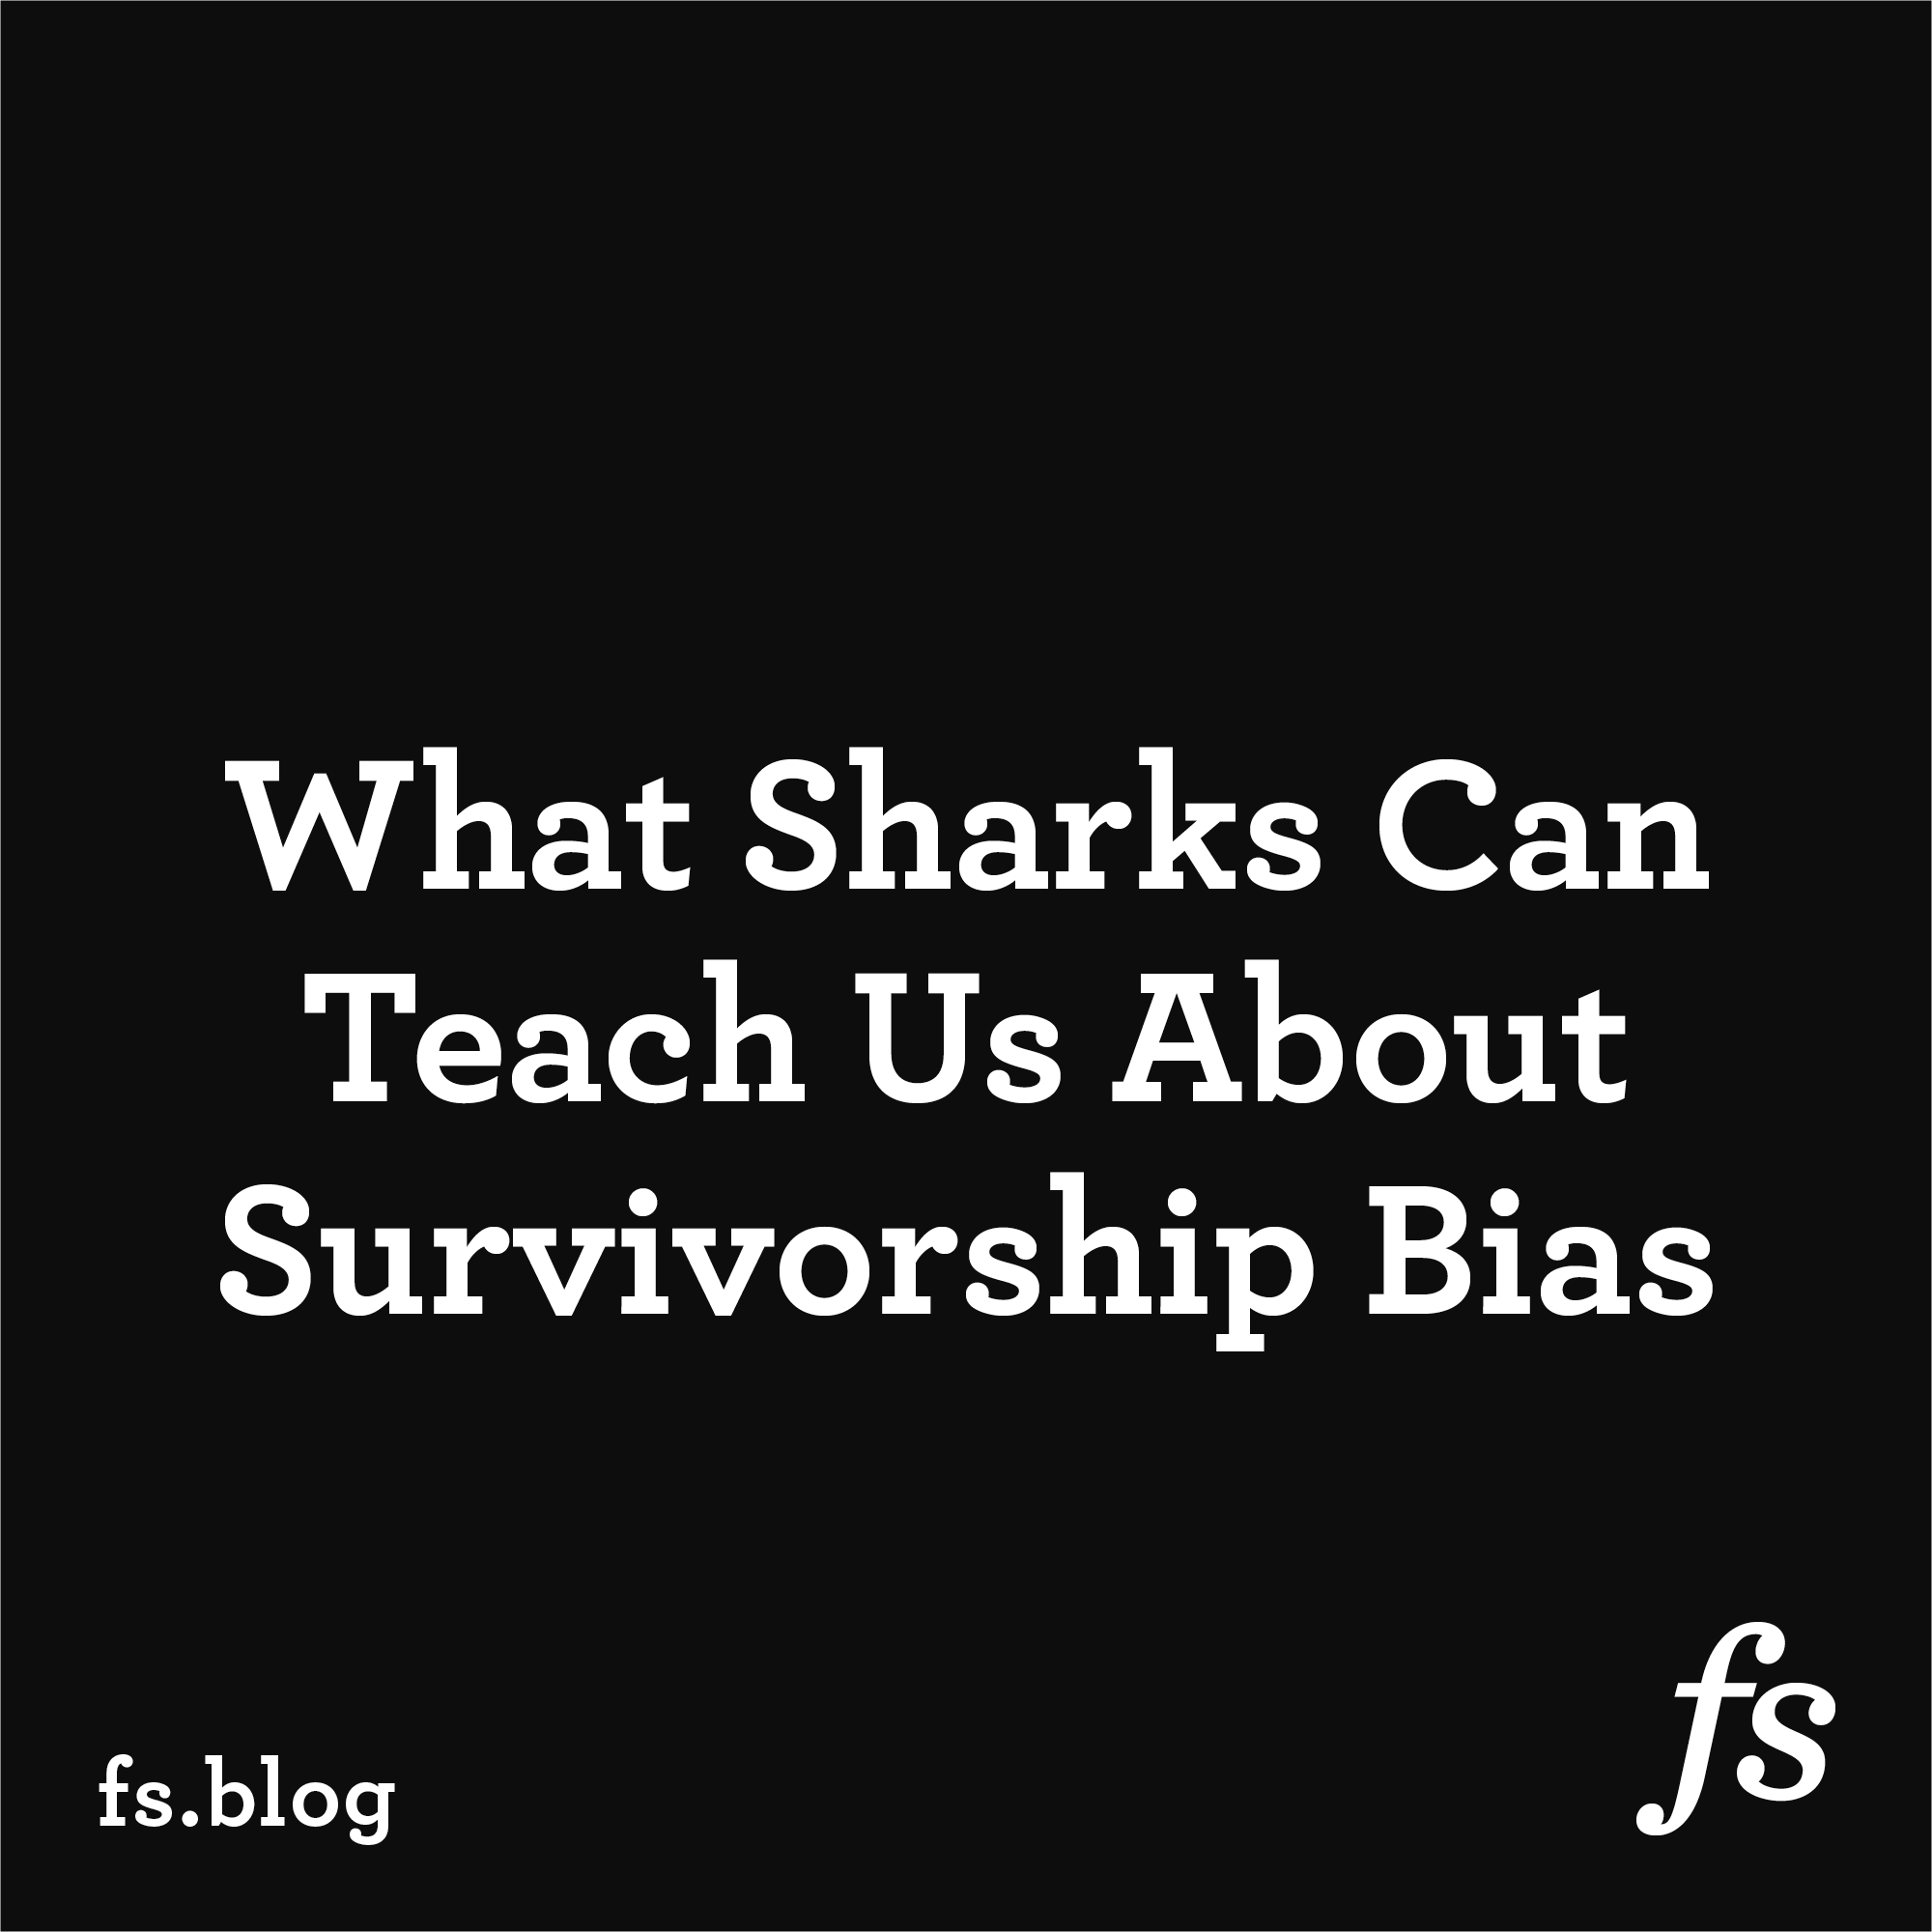 What Sharks Can Teach Us About Survivorship Bias